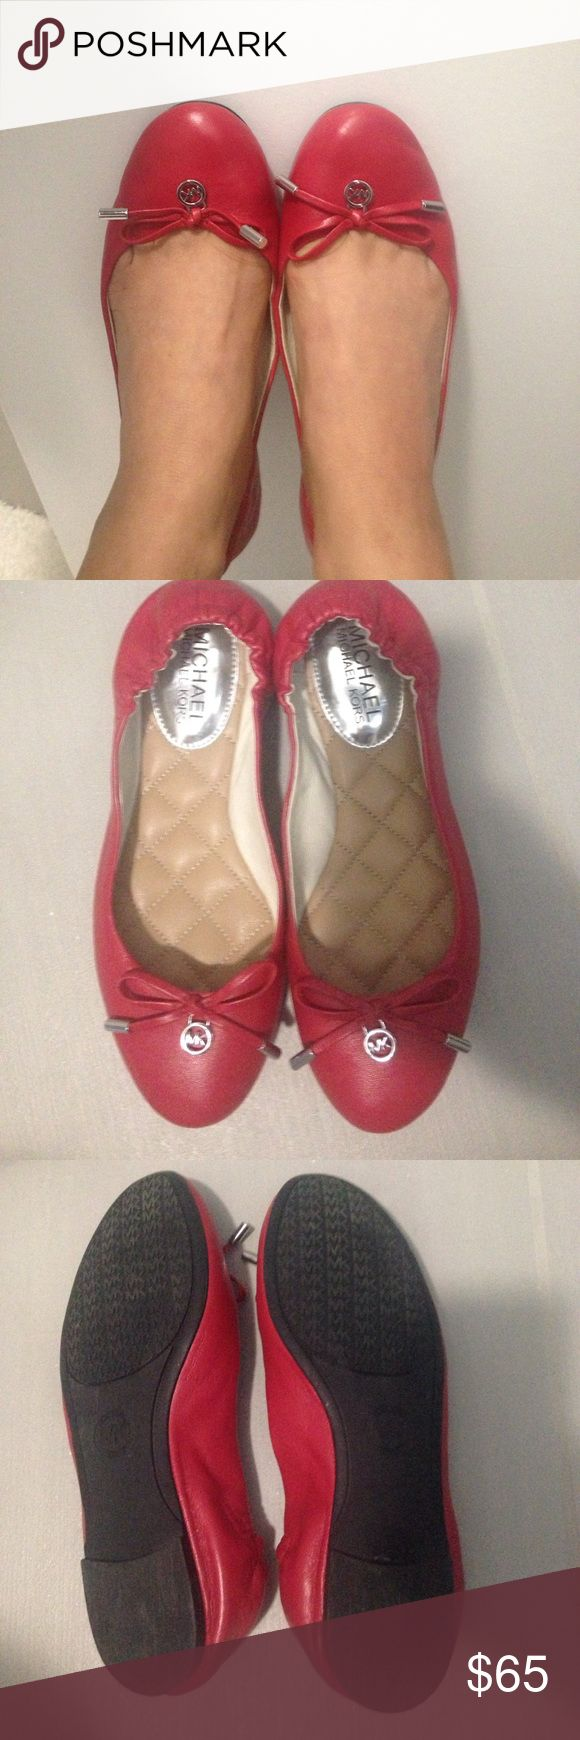 Michael Kors Red ballet flats Only wore twice!! Michael Kors Shoes Flats & Loafers